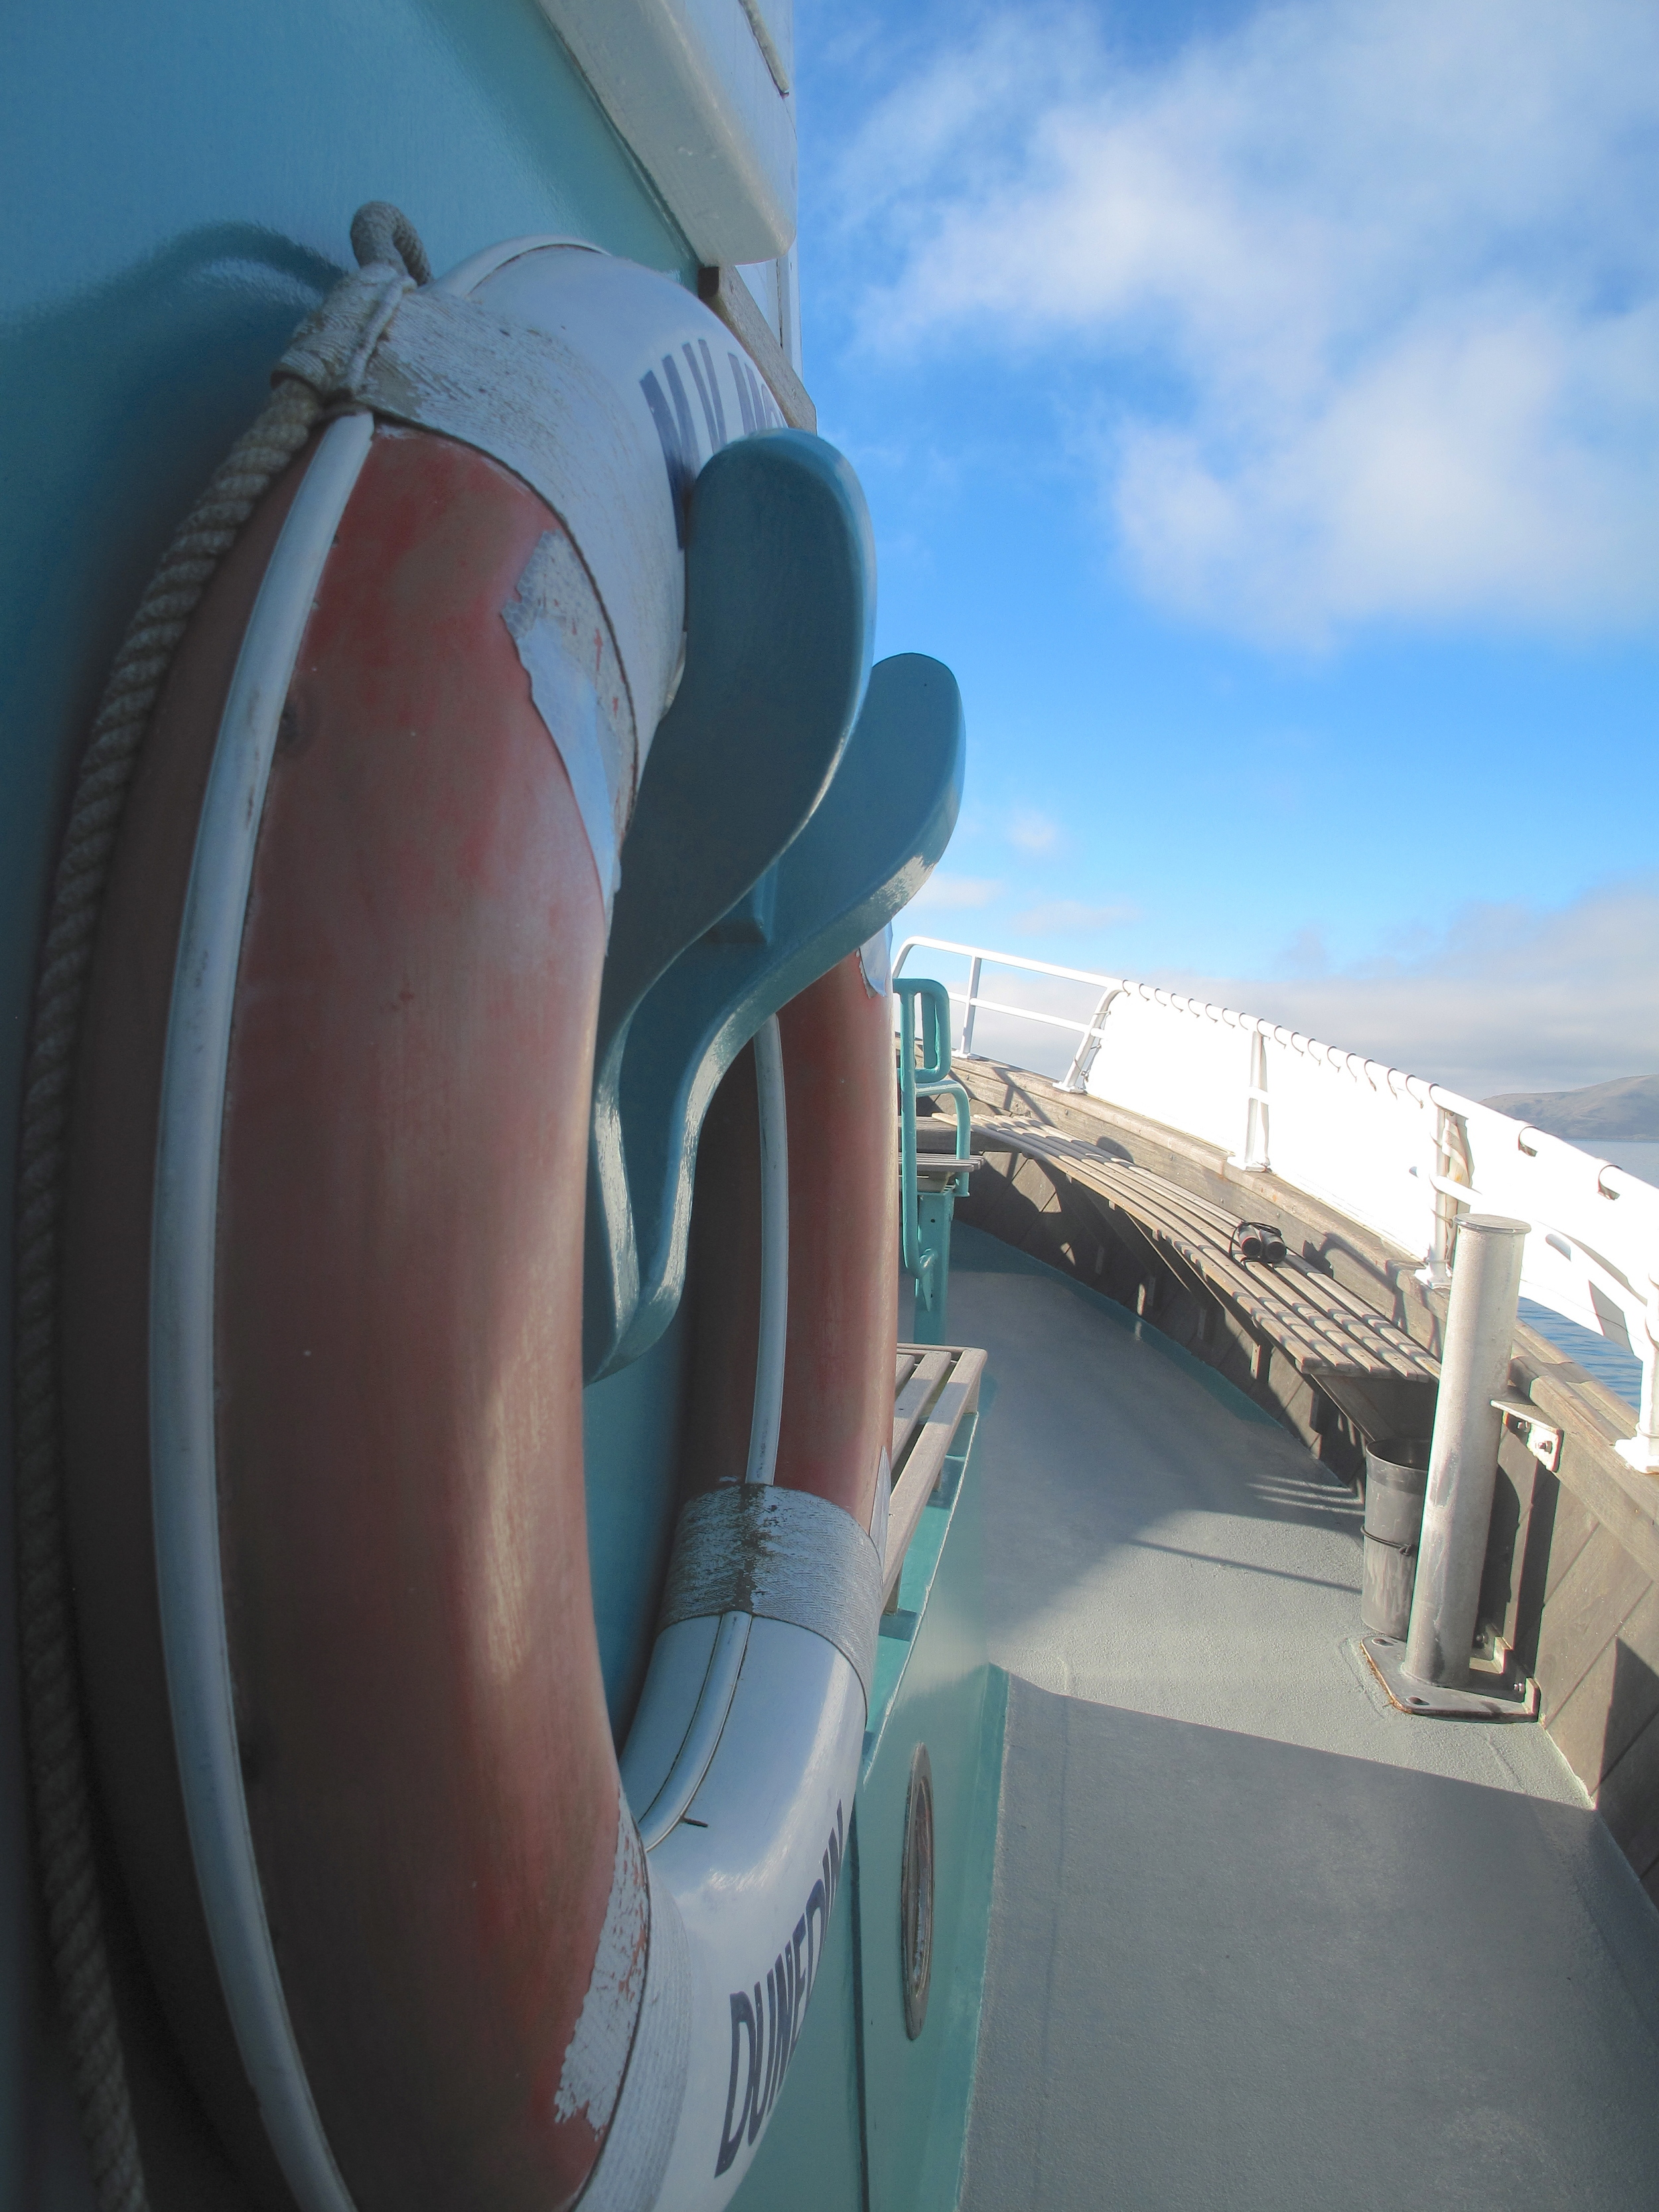 Life saver on Monarch Boat